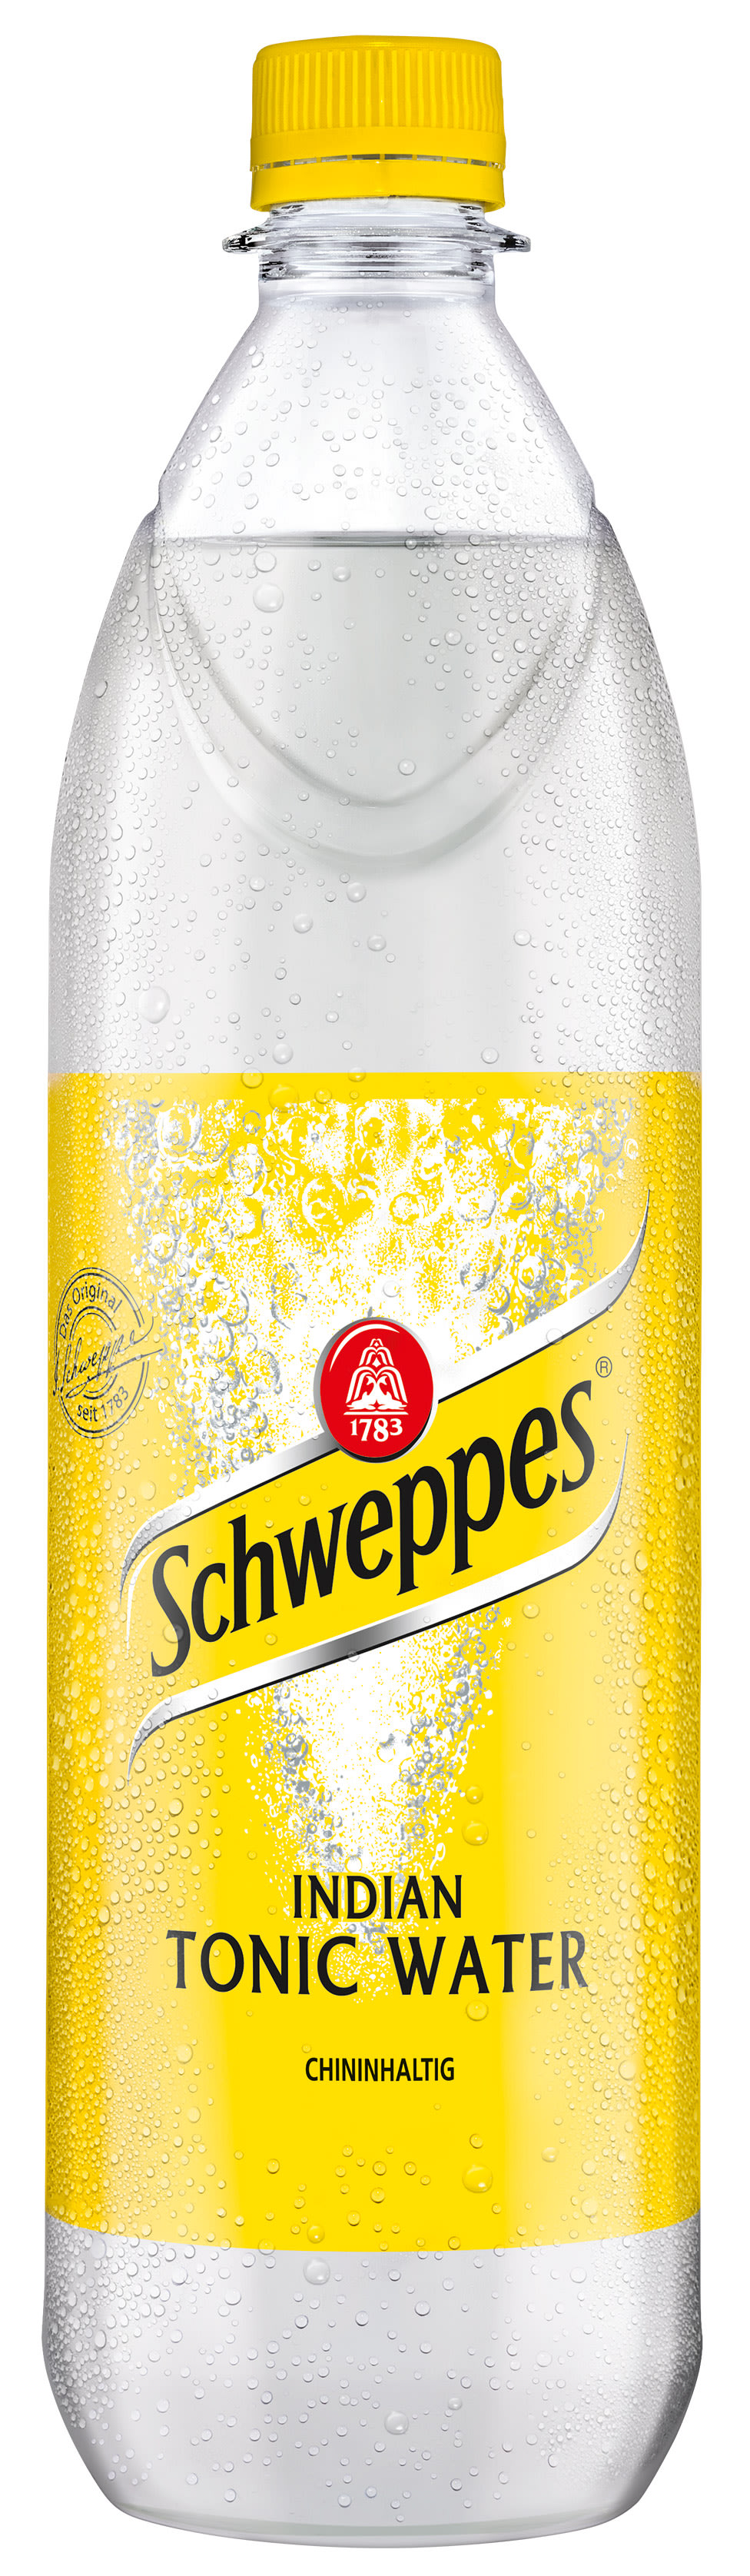 Schweppes Indian Tonic Water 1 l PET Mehrweg